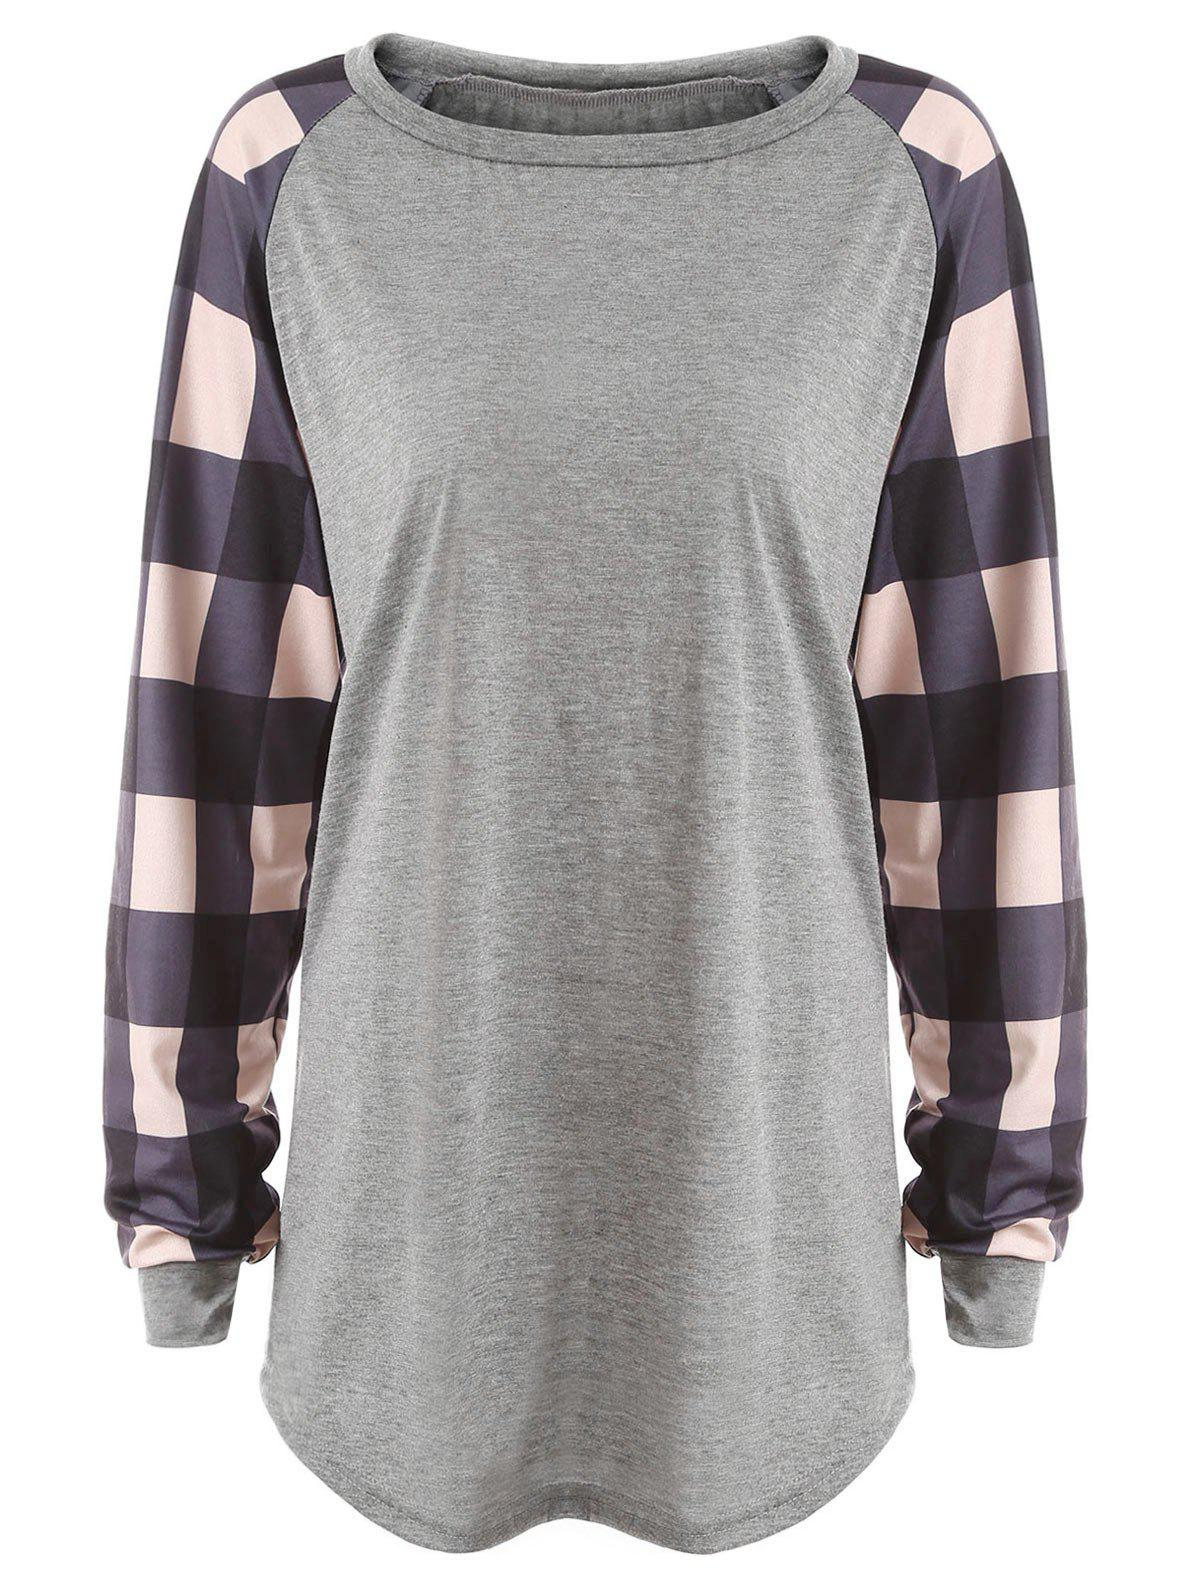 Plus Size Plaid Panel Raglan Sleeve T-shirt stripe panel raglan sleeve t shirt